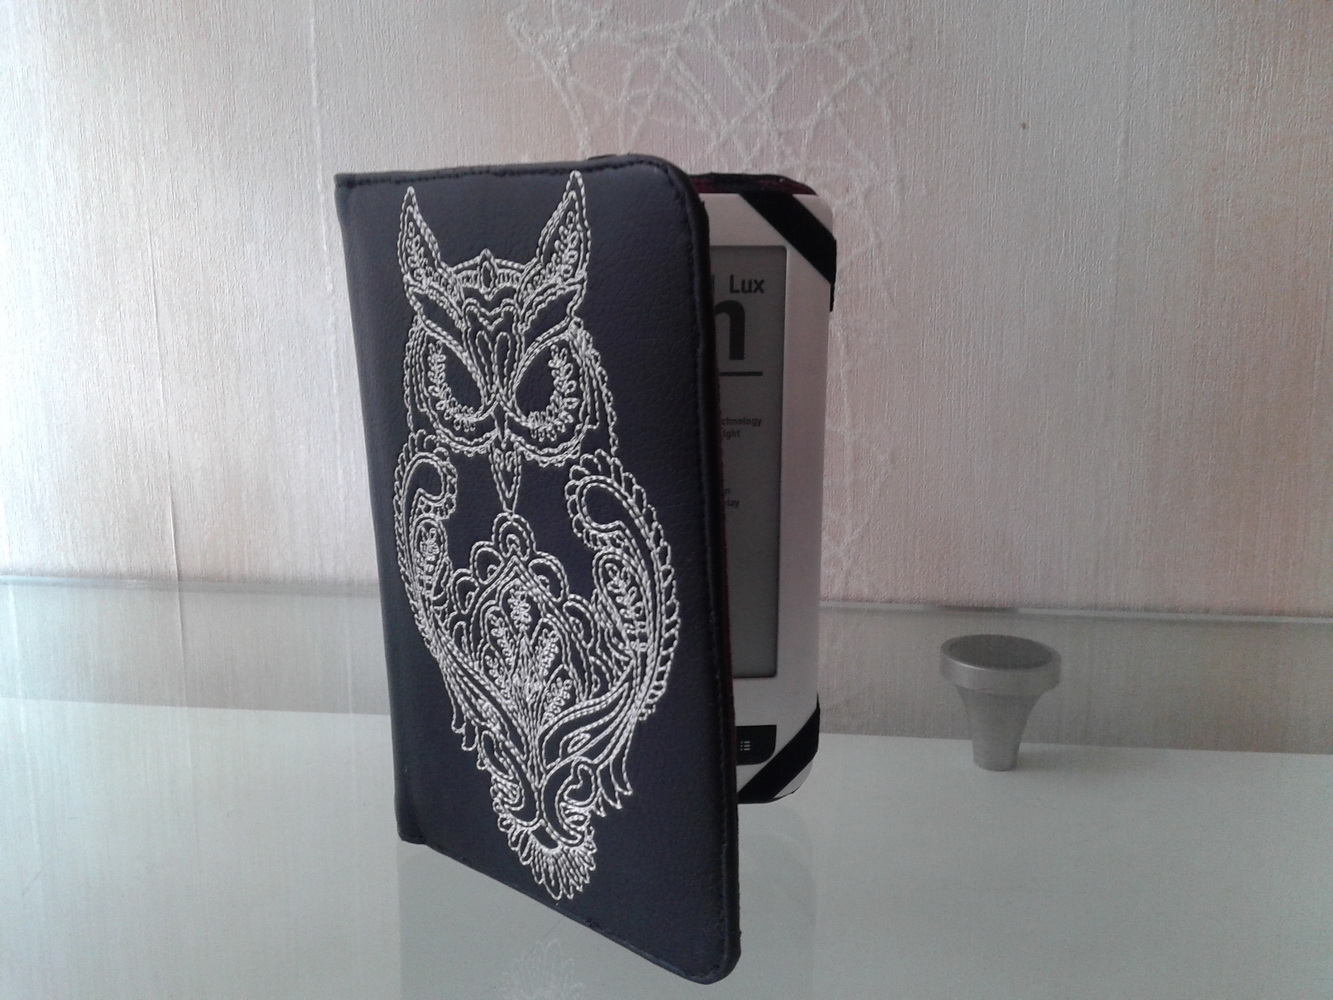 Black cover with embroidered owl design